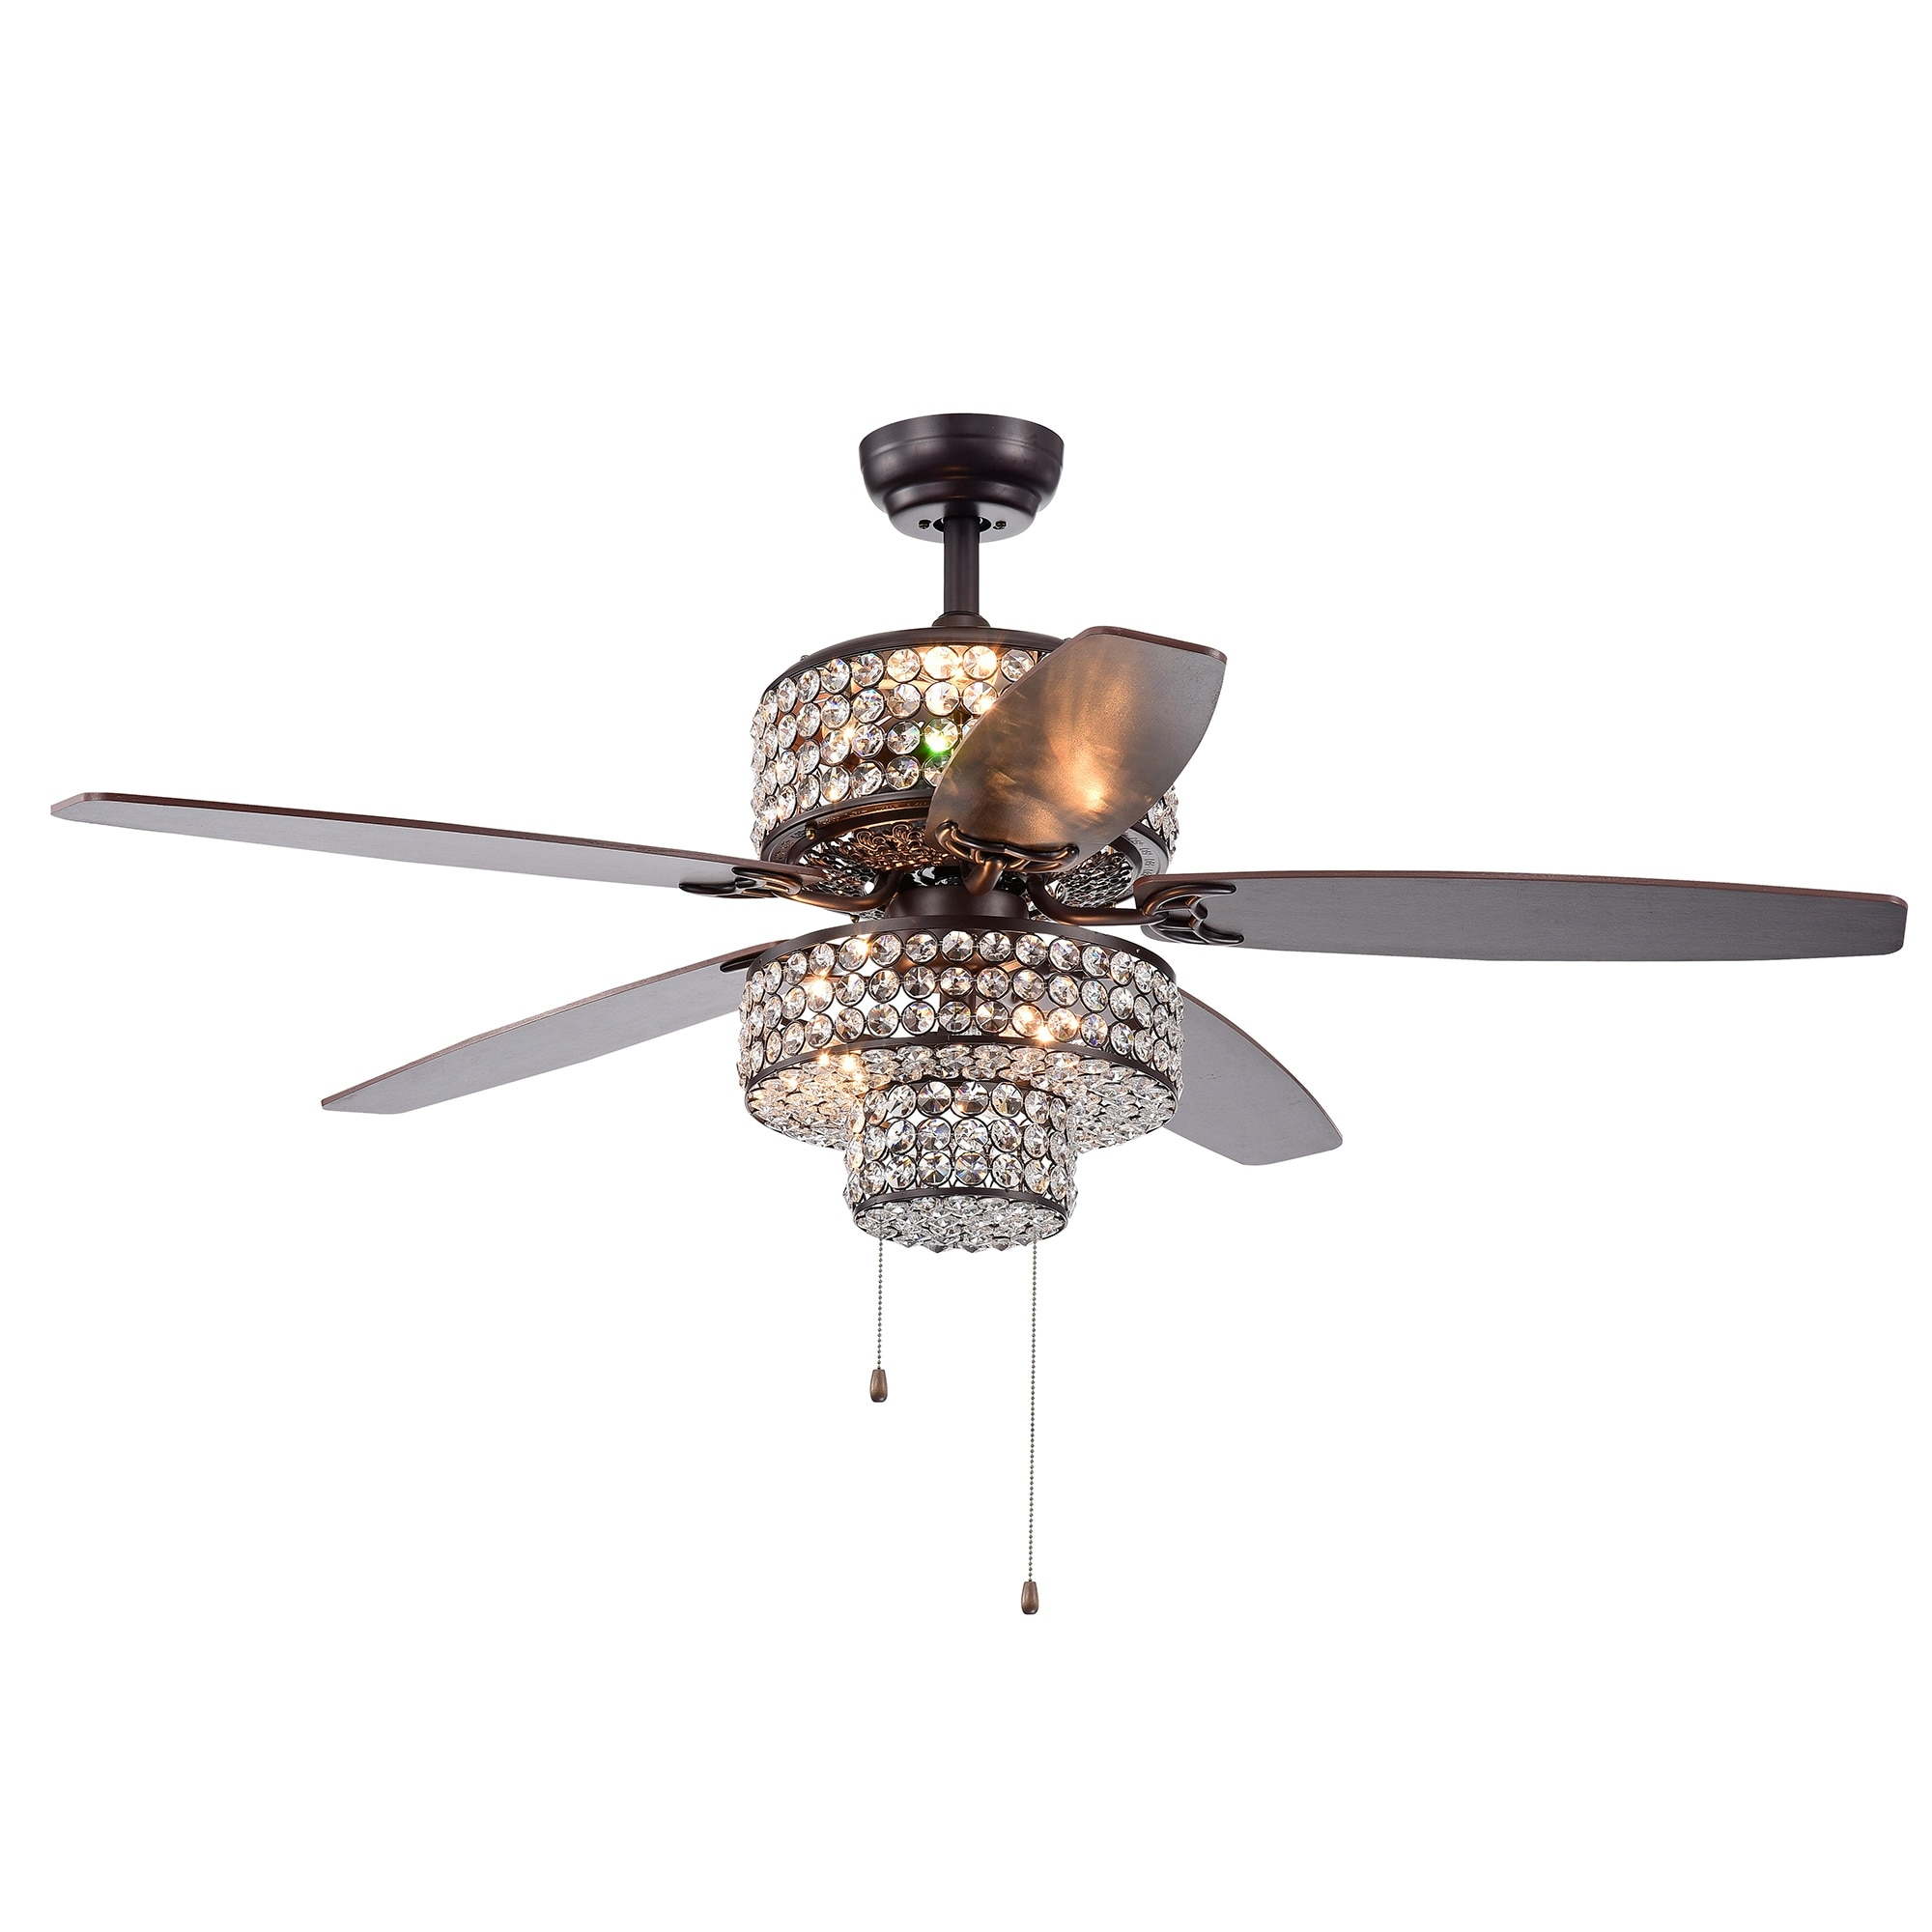 Tierna 5 Blade 52 Inch Rustic Bronze Lighted Ceiling Fans Two Tiered Crystal Shade Optional Remote Incl 2 Color Option Blades Overstock 22538391